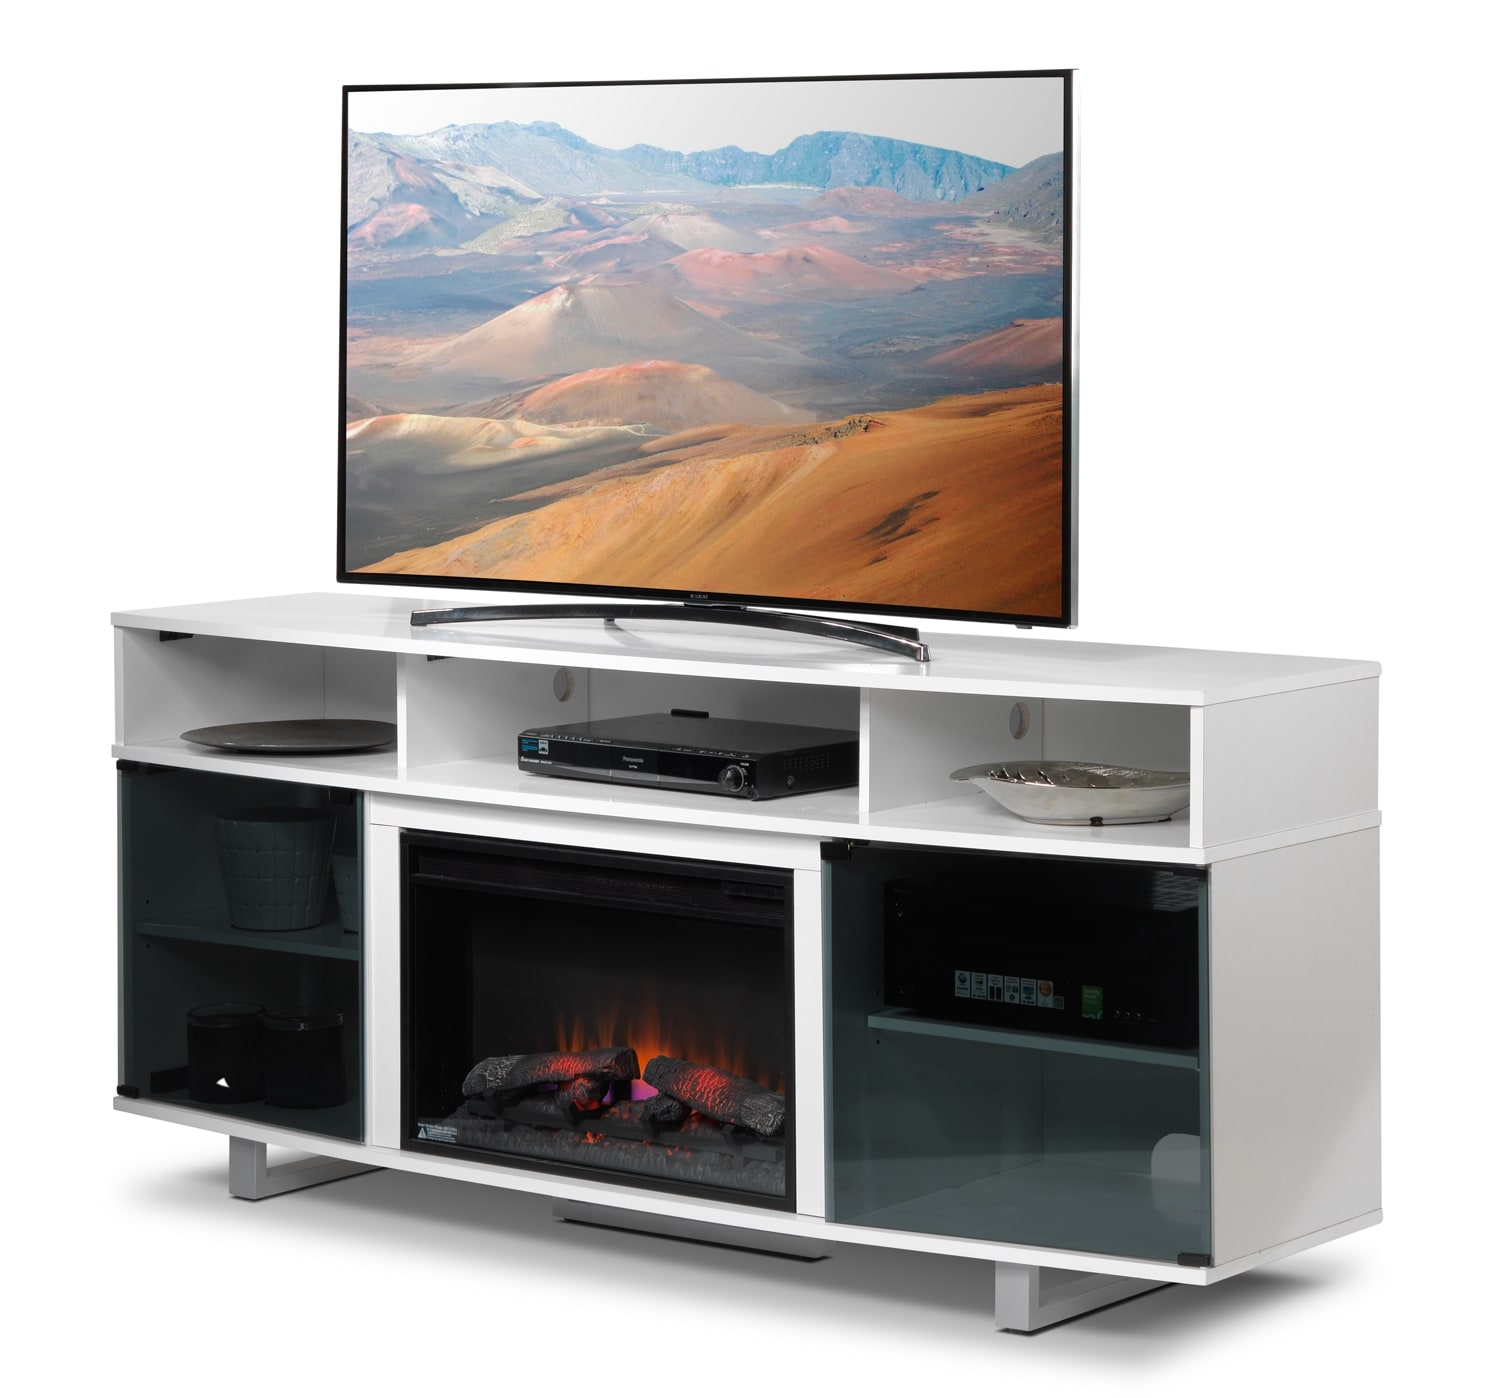 sorenson fireplace tv stand  white  leon's -  fireplace tv stand  white hover to zoom